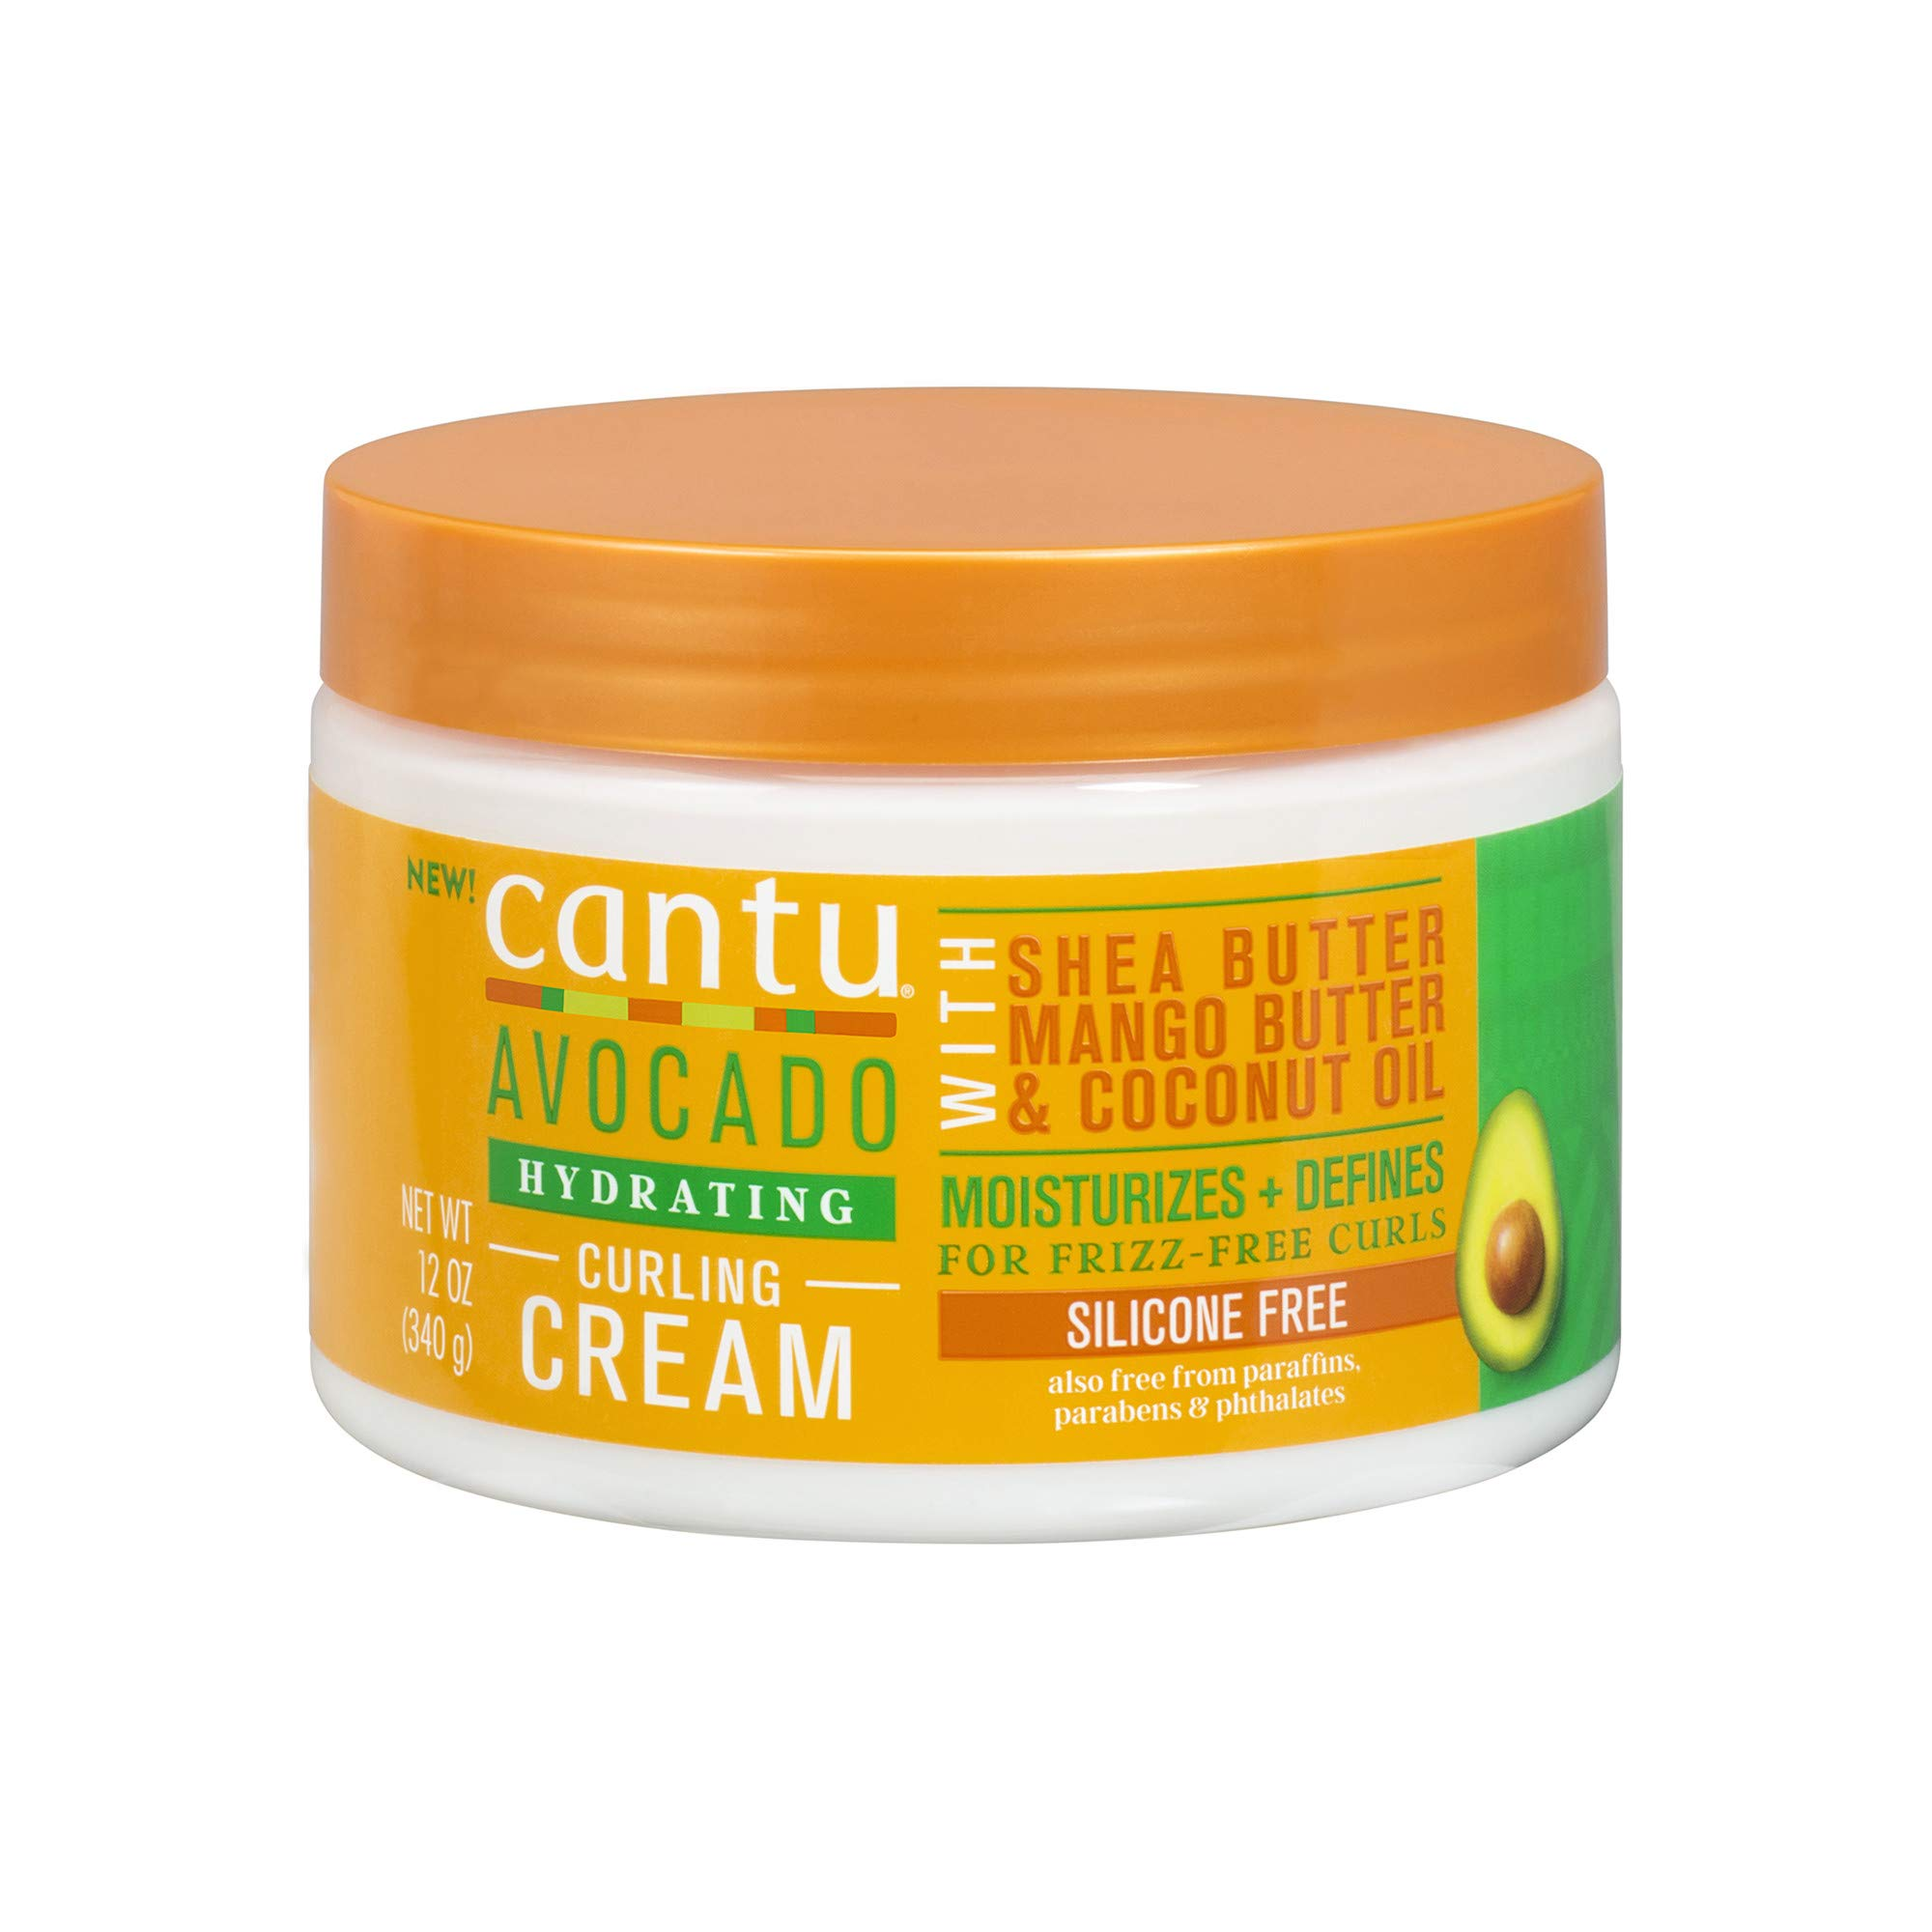 Cantu Avocado Curling Cream with Shea Butter, Mango Butter, & Coconut Oil, 12 Ounce